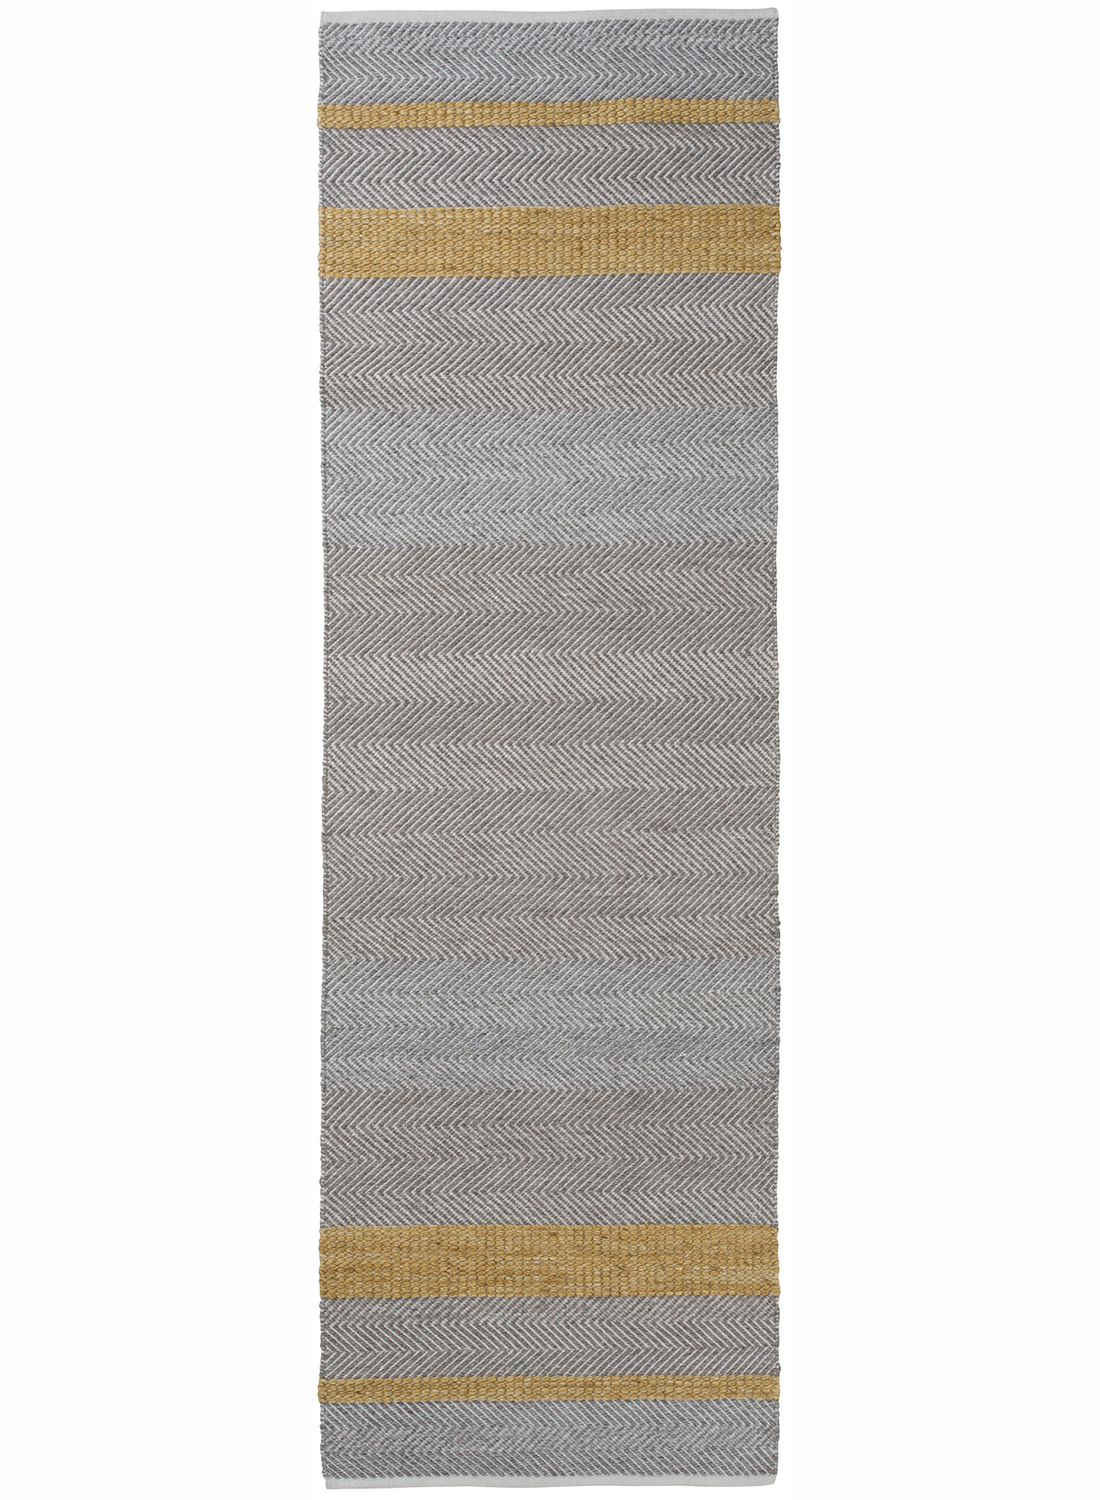 tapis kilim long pour entree norwich tapis moderne par unamourdetapis ebay. Black Bedroom Furniture Sets. Home Design Ideas